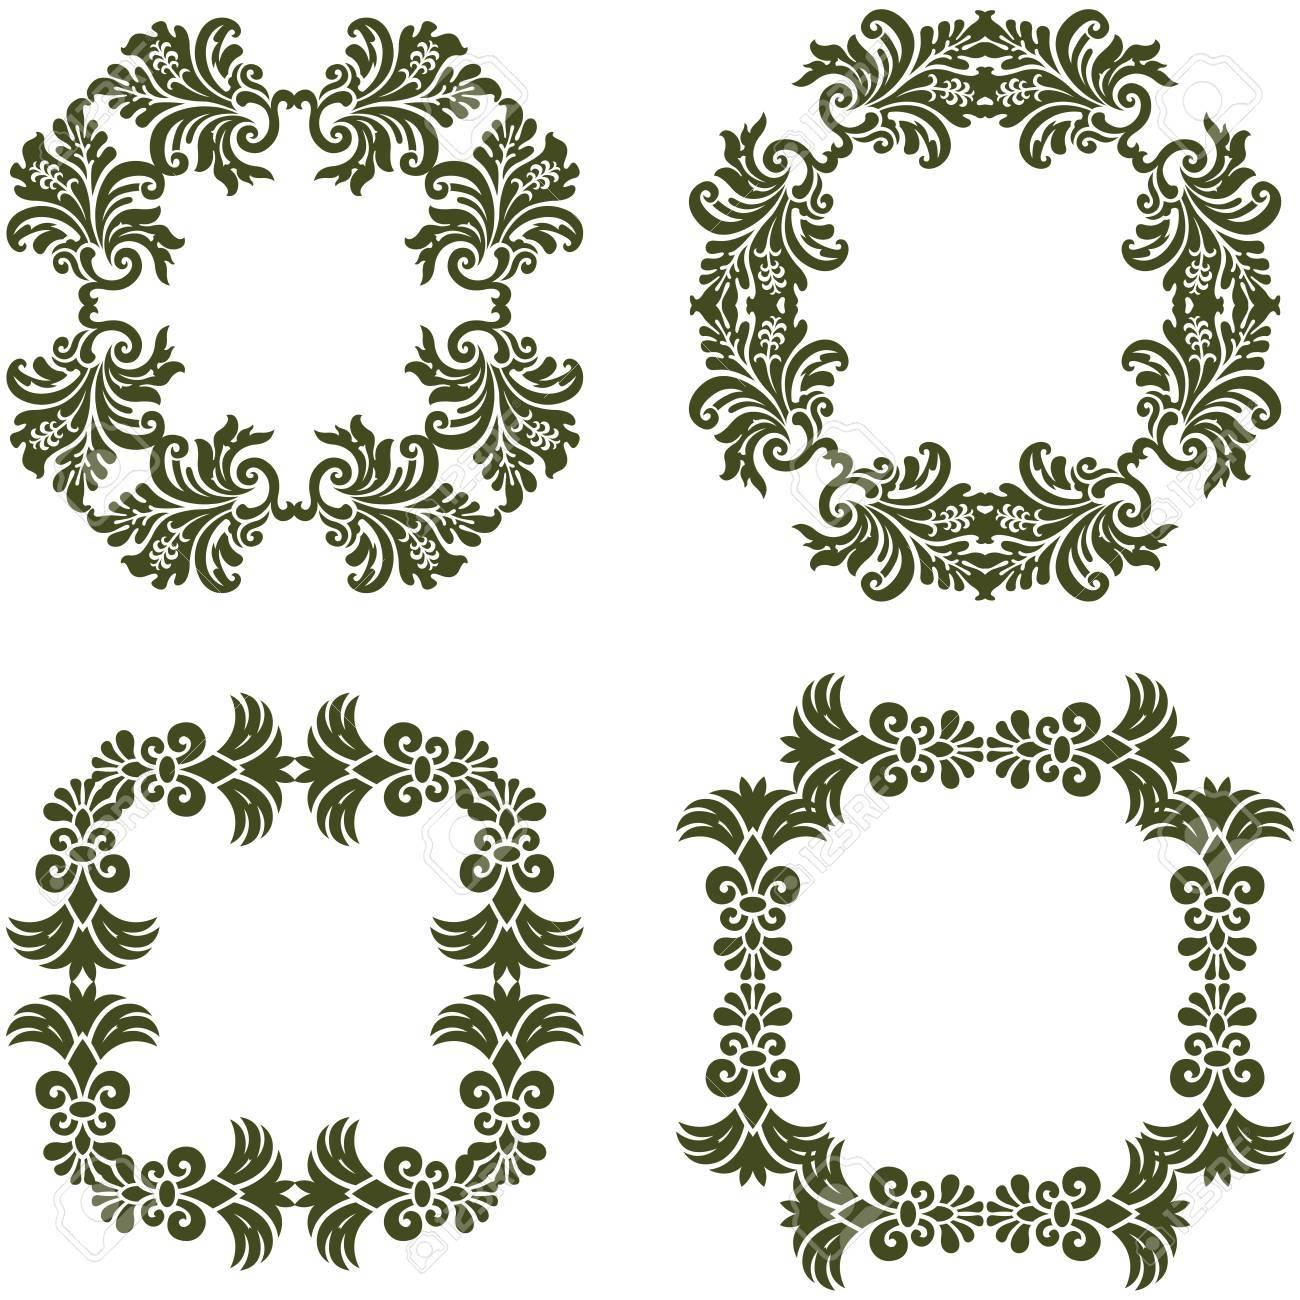 Floral damask frames borders royalty free cliparts vectors and floral damask frames borders stock vector 27552472 jeuxipadfo Gallery